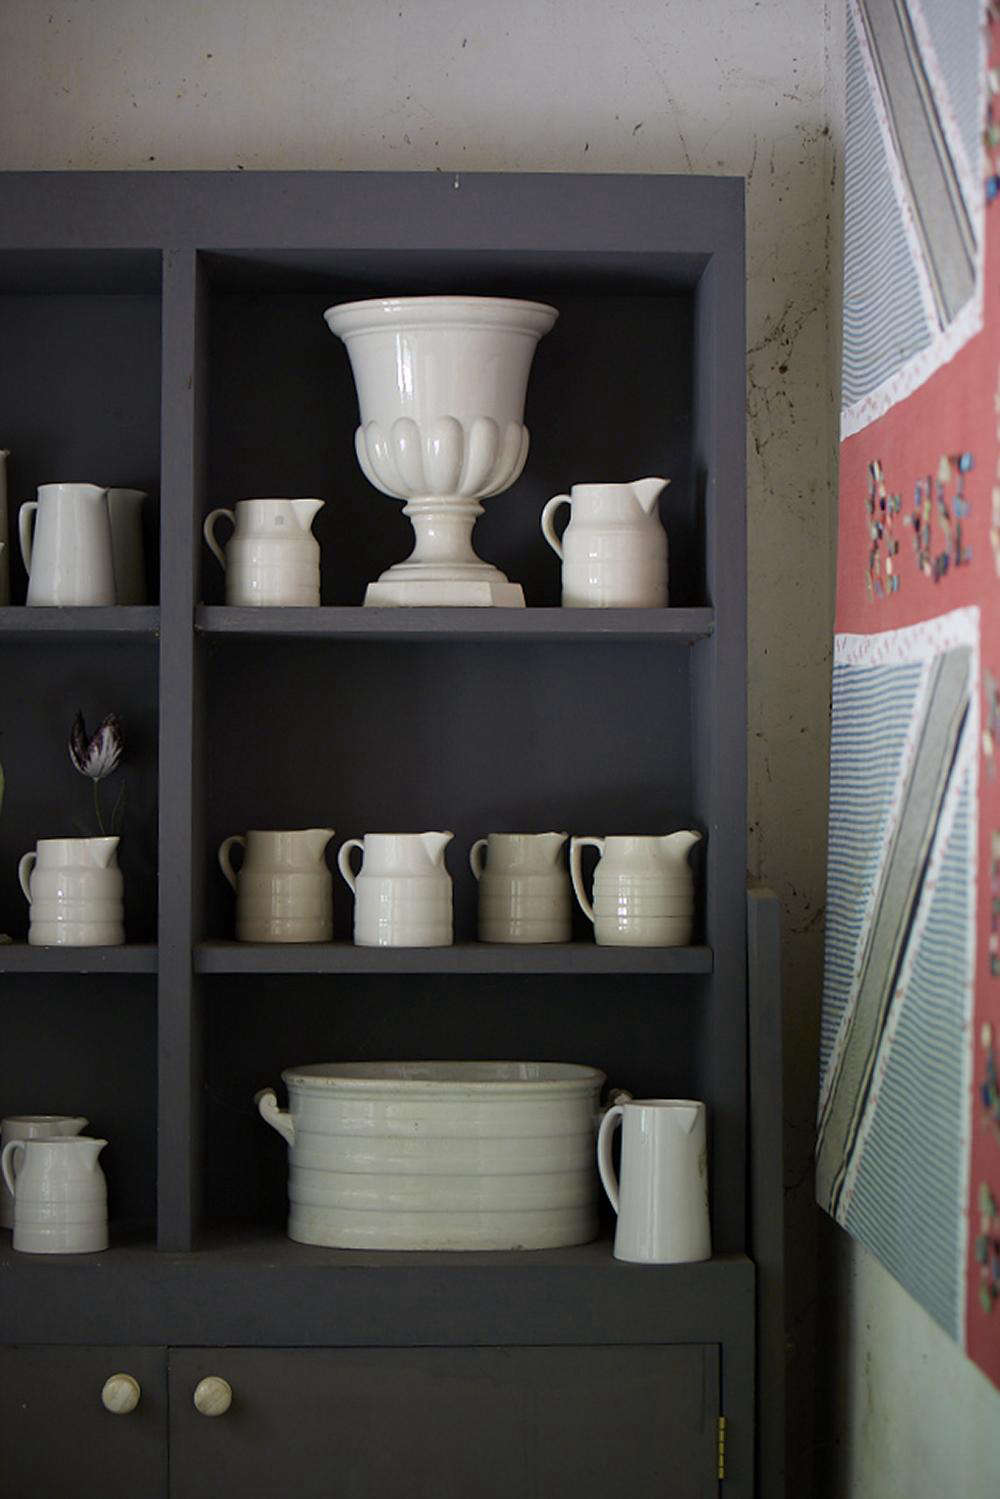 Useful creamware makes a monochrome collection. The vase cupboard is painted the same color as the exterior of the stables.